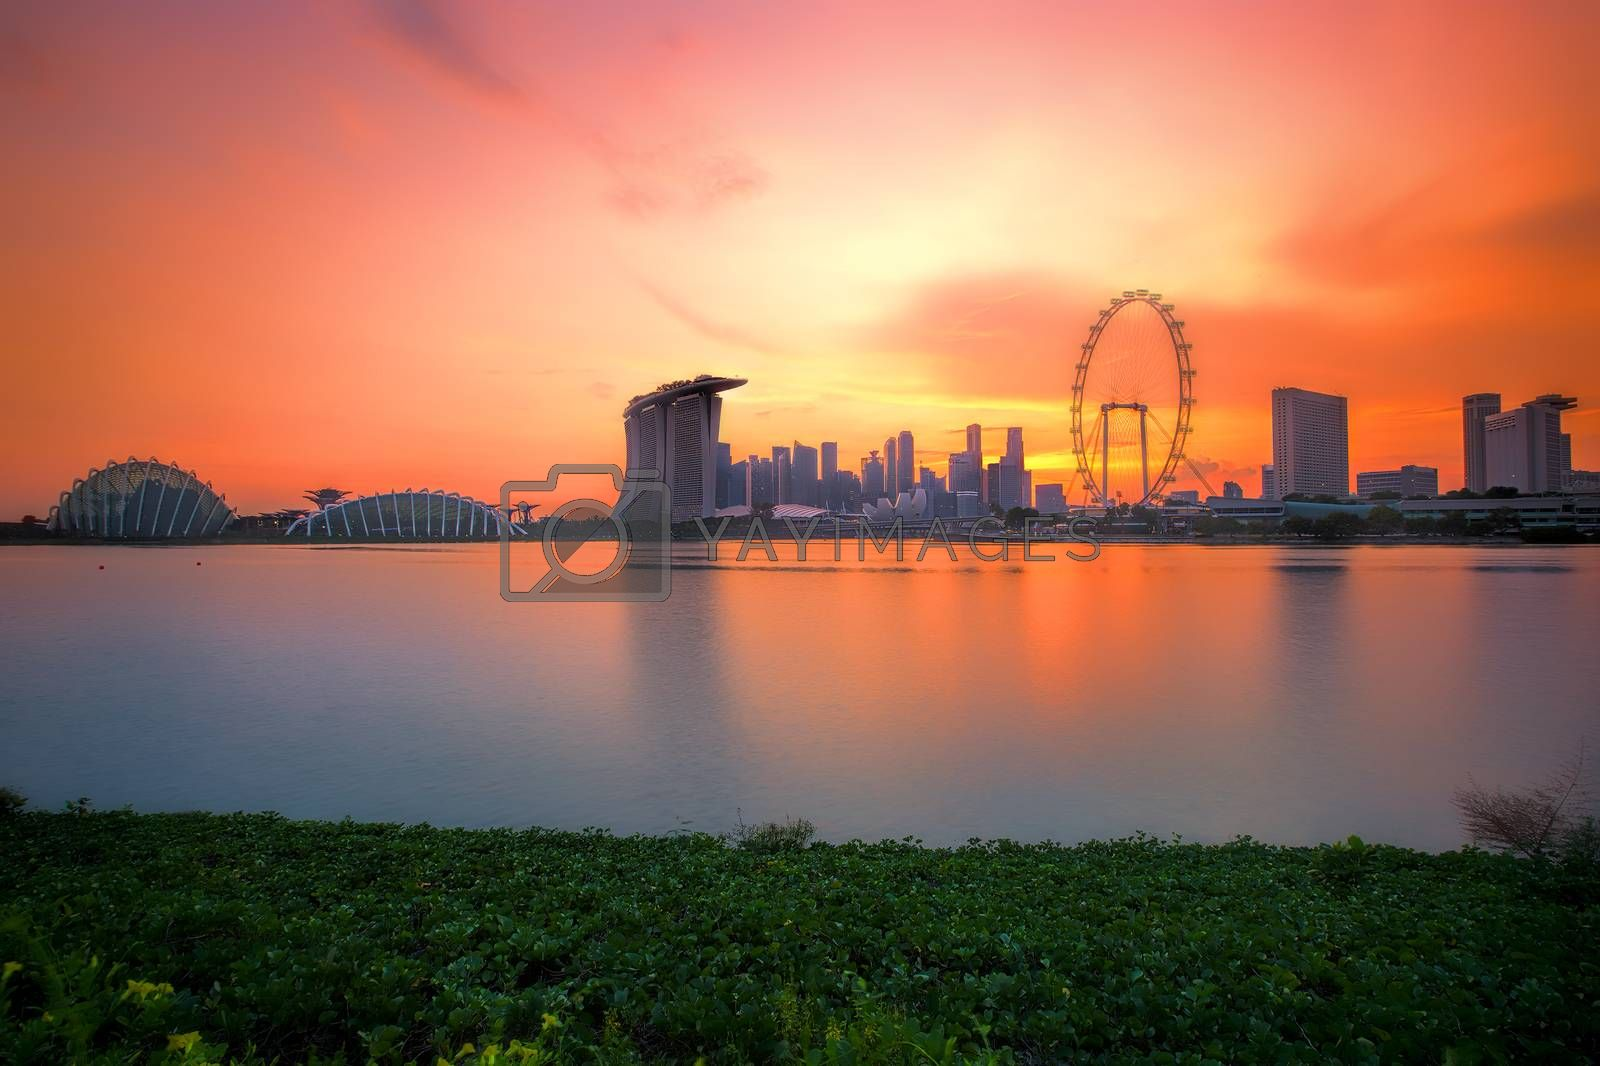 Royalty free image of Singapore Skyline at sunset by kjorgen